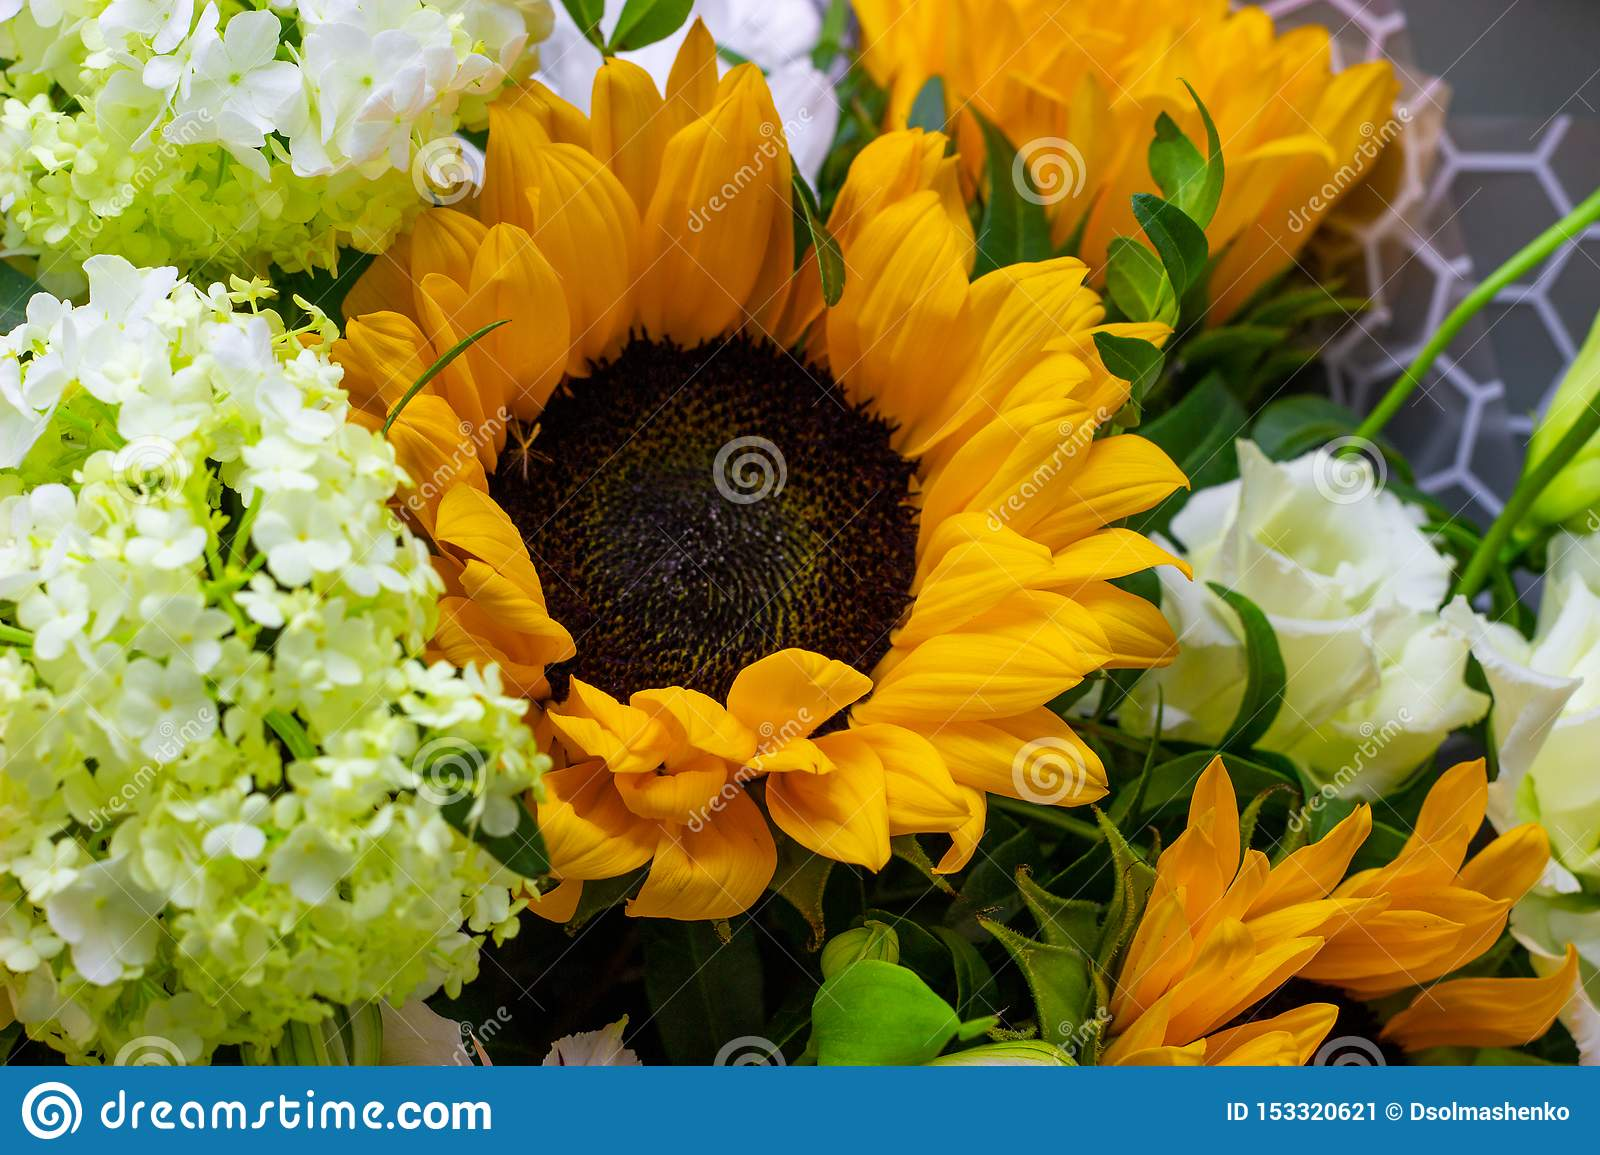 Bright bouquet with yellow sunflowers and rose, pink eustoma and green viburnum floral background